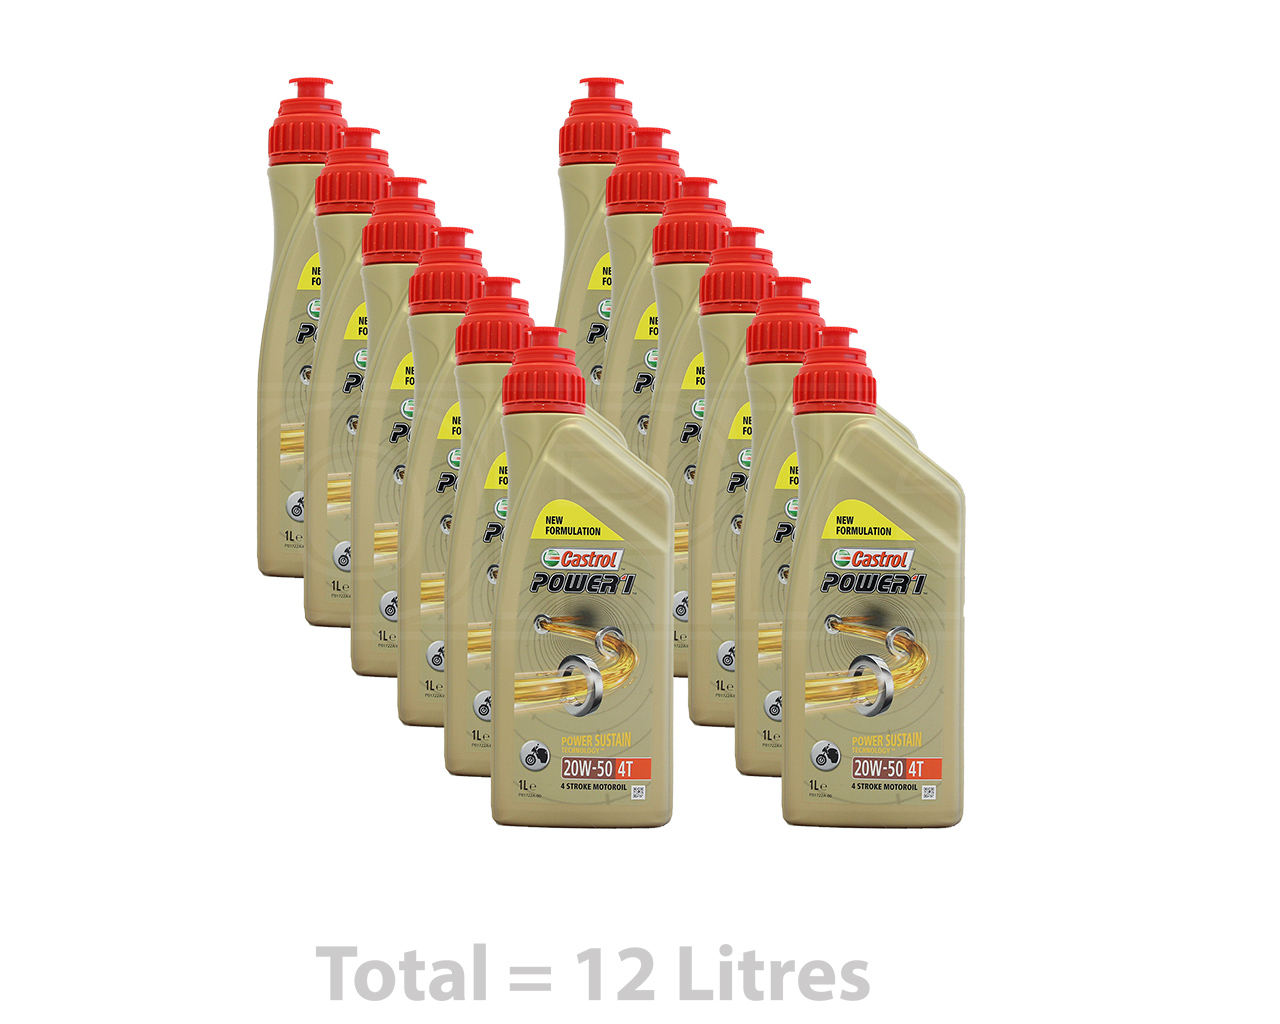 What is the viscosity of 20w/50 motor oil?